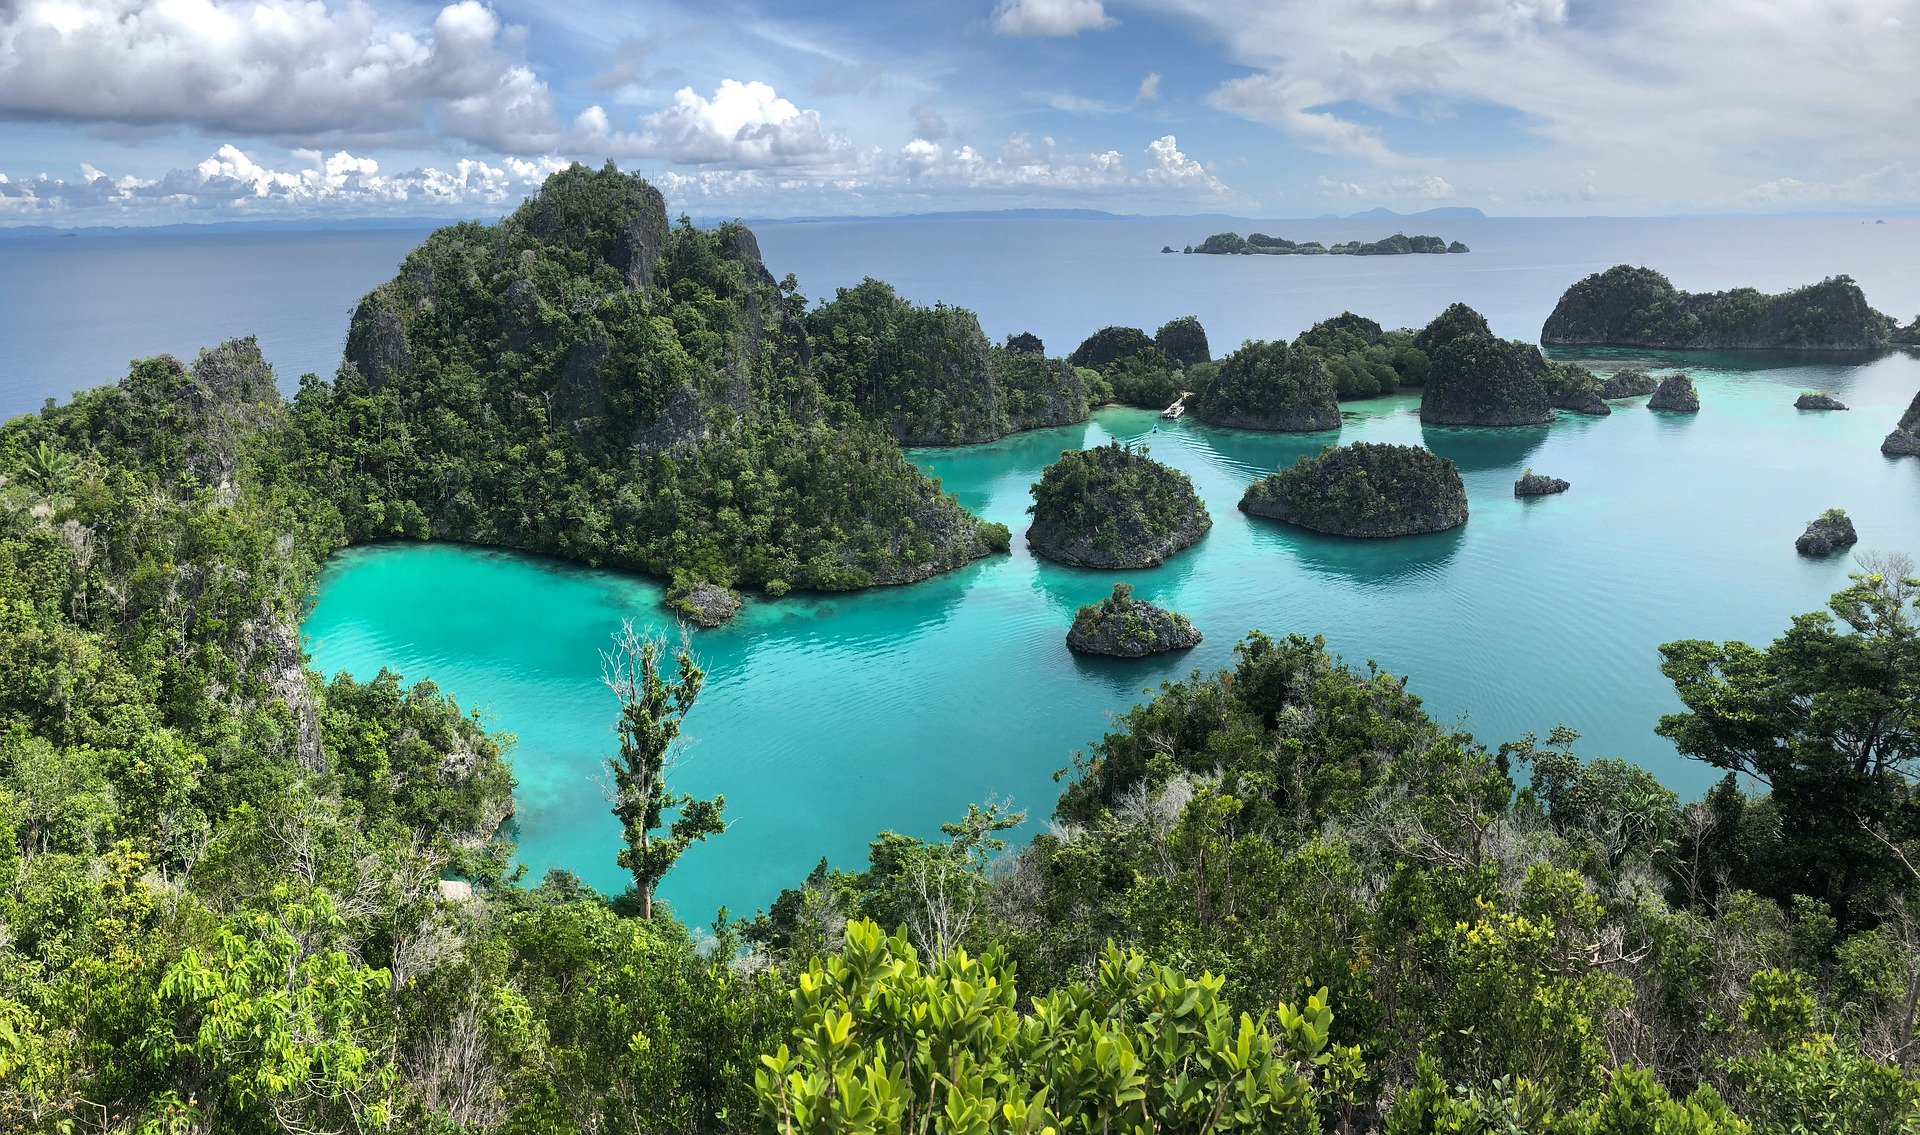 aerial view of Raja Ampat islands with turquoise waters and lush green forests in the Coral Triangle